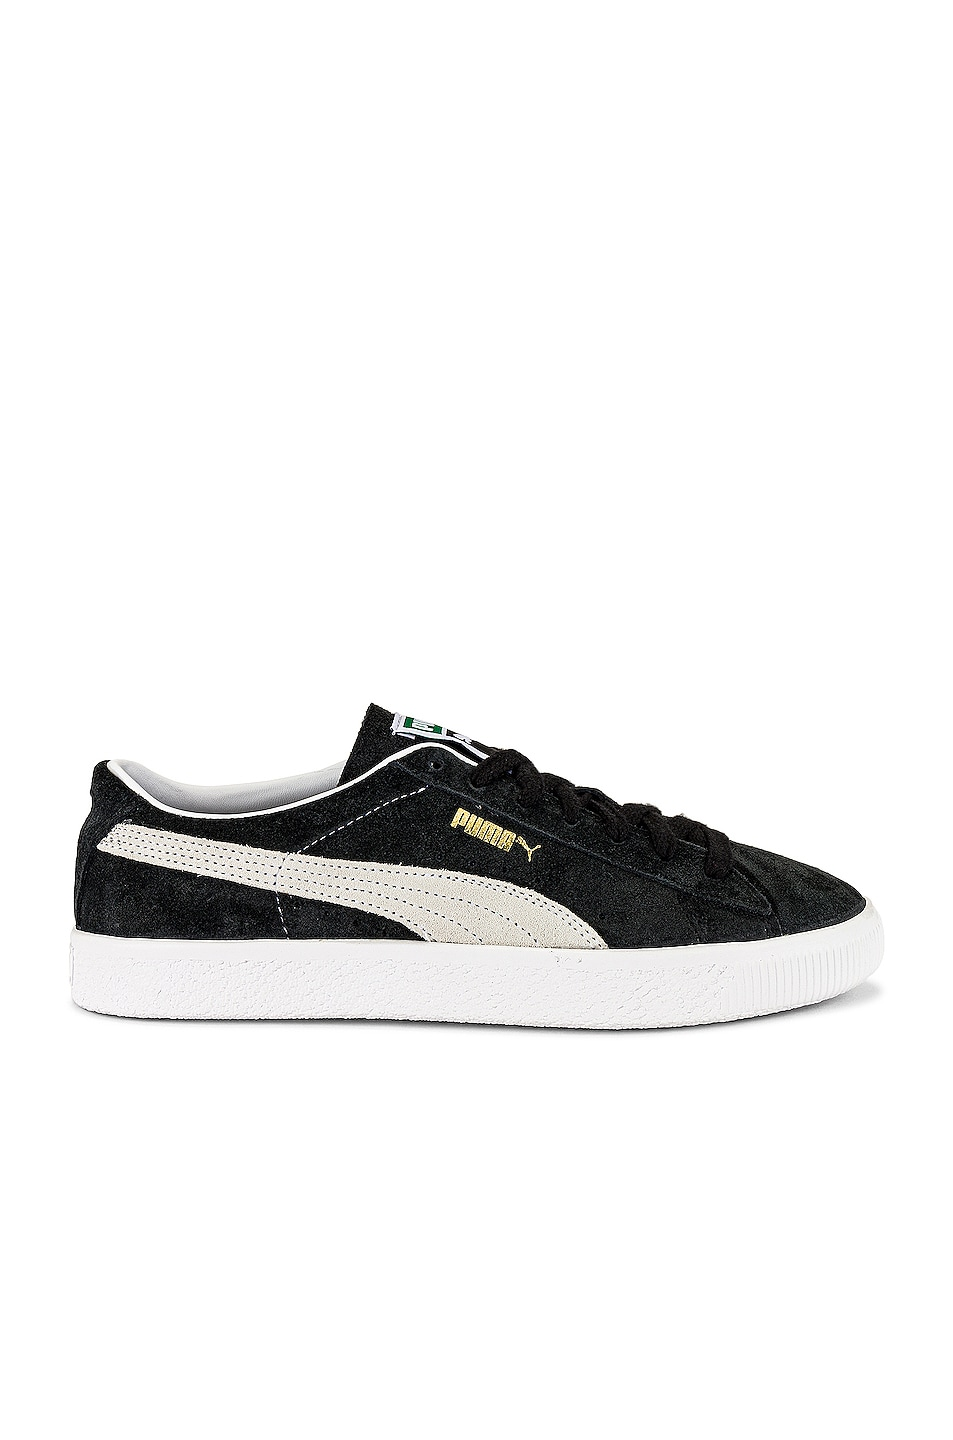 Image 1 of Puma Select Suede in Black